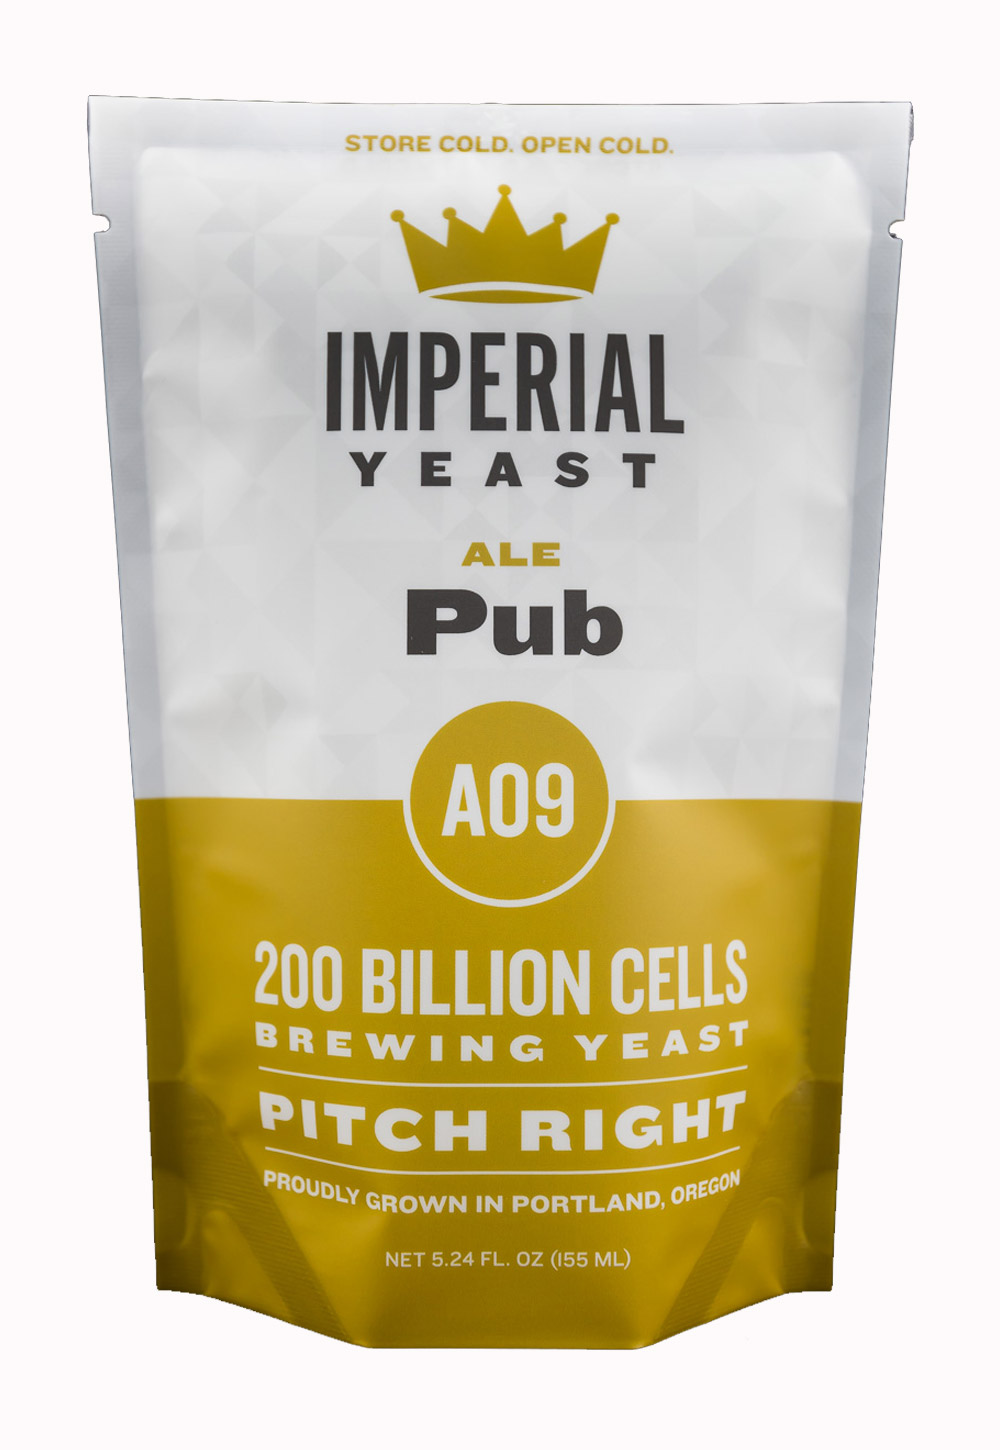 A09 Pub Ale Yeast from Imperial Yeast